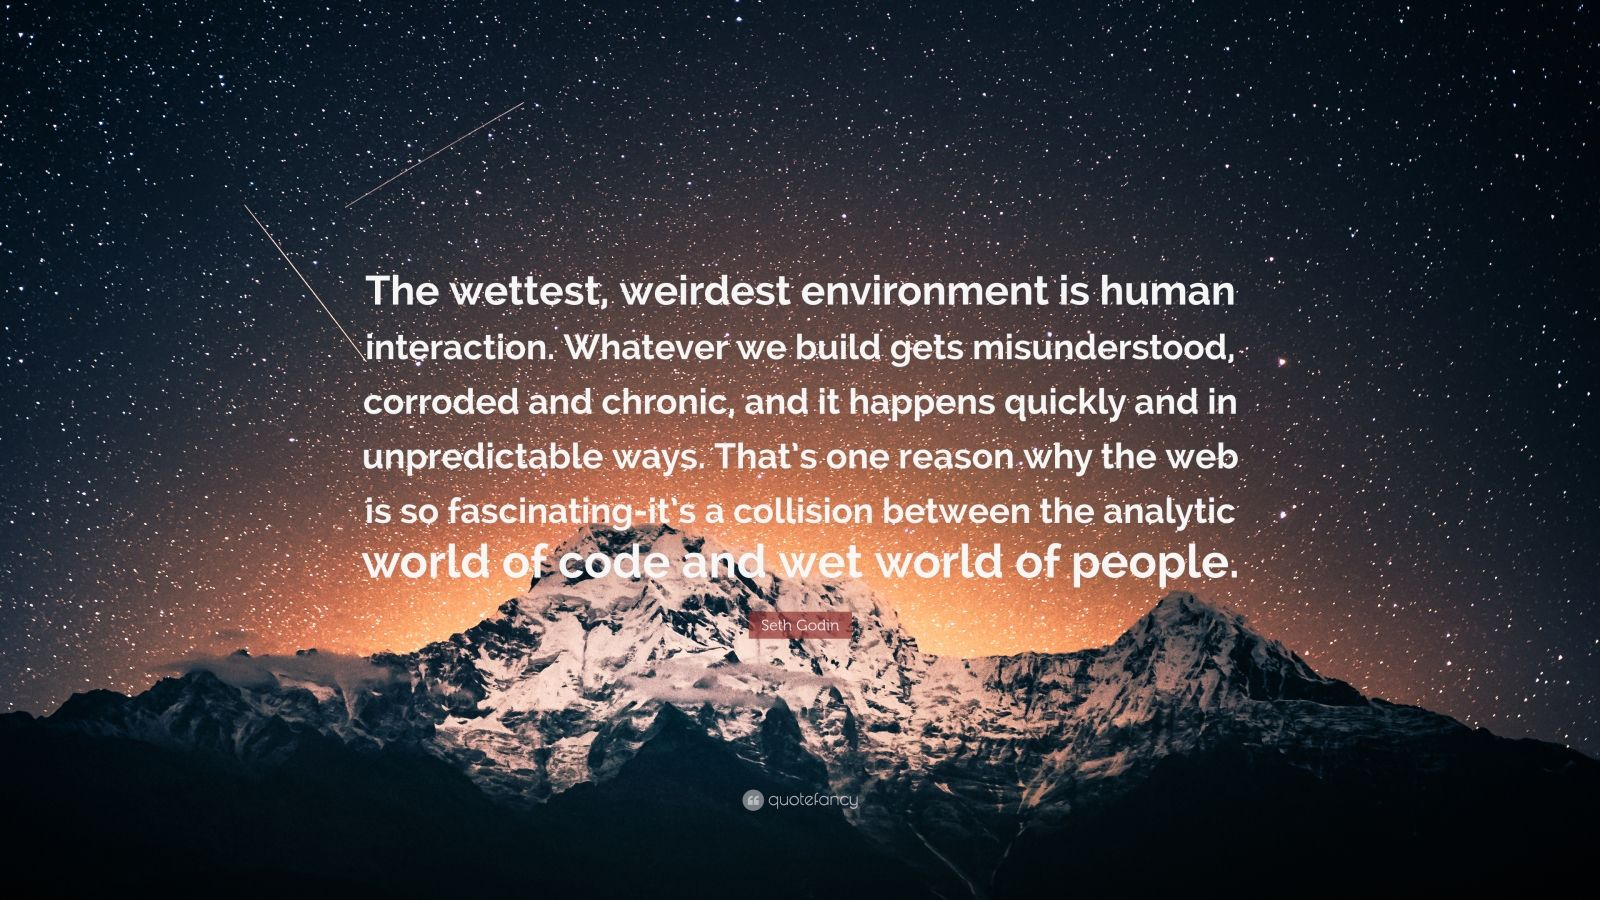 "Seth Godin Quote: ""The wettest, weirdest environment is human interaction. Whatever we build gets misunderstood, corroded and chronic, and it happens quickly and in unpredictable ways. That's one reason why the web is so fascinating-it's a collision between the analytic world of code and wet world of people."""